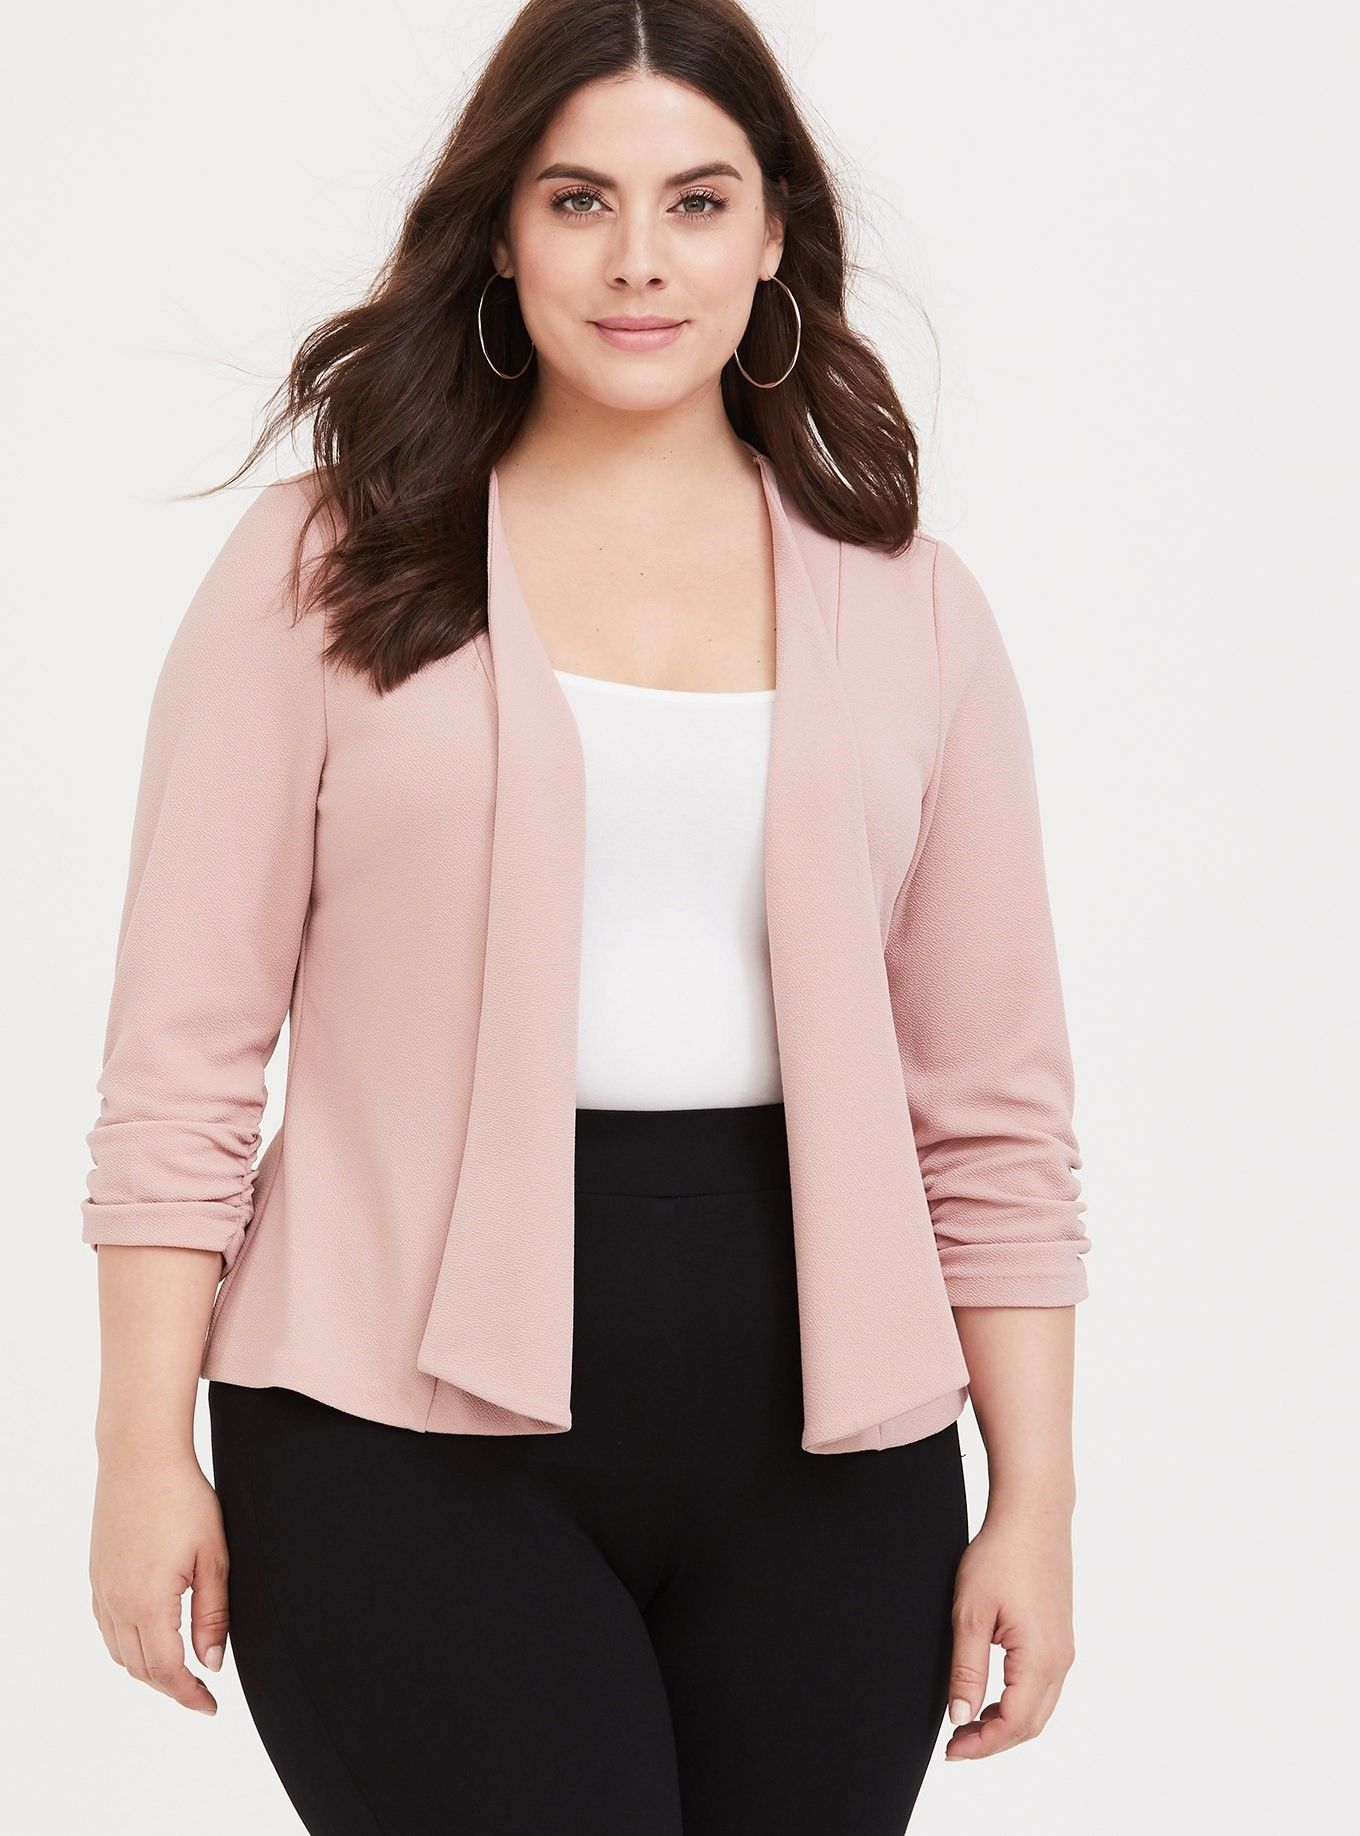 af95d3df64ba5 Plus Size Coats & Jackets for Women. Pink Drape Blazer - A softly textured  and lightweight blazer is an effortless layering piece that has ...